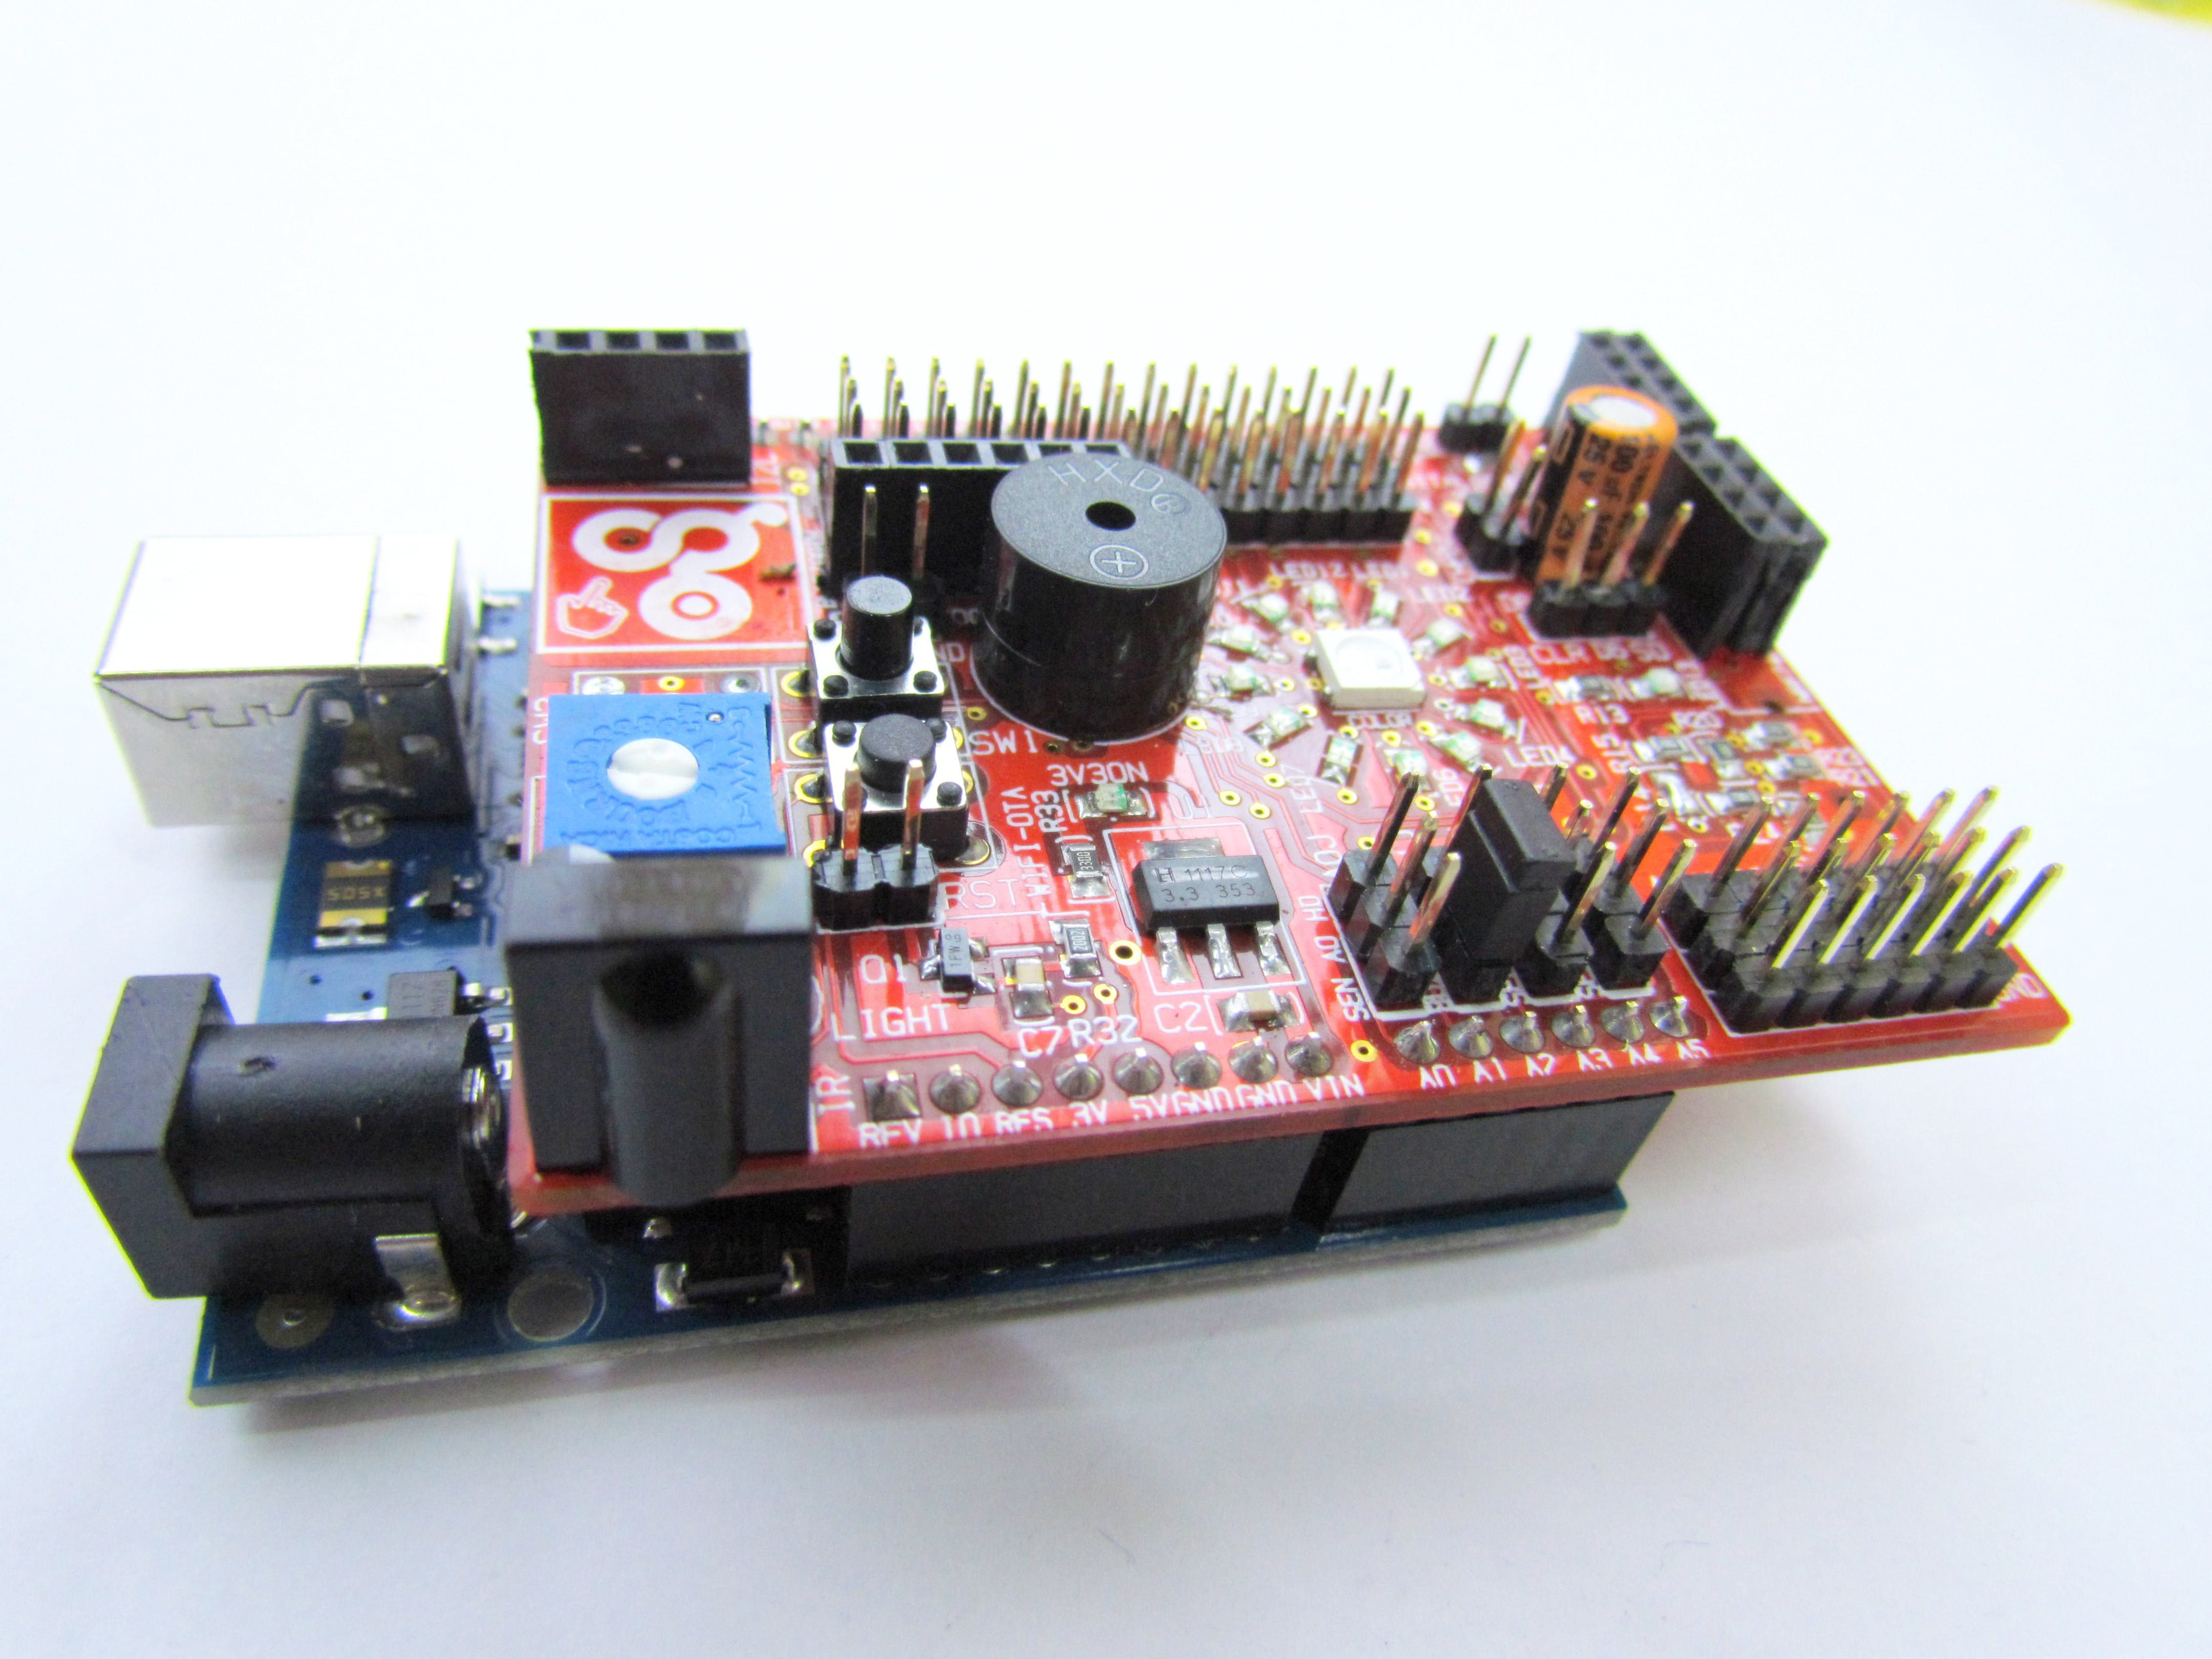 Connect jumper to SEL1 to enable the on board Buzzer.